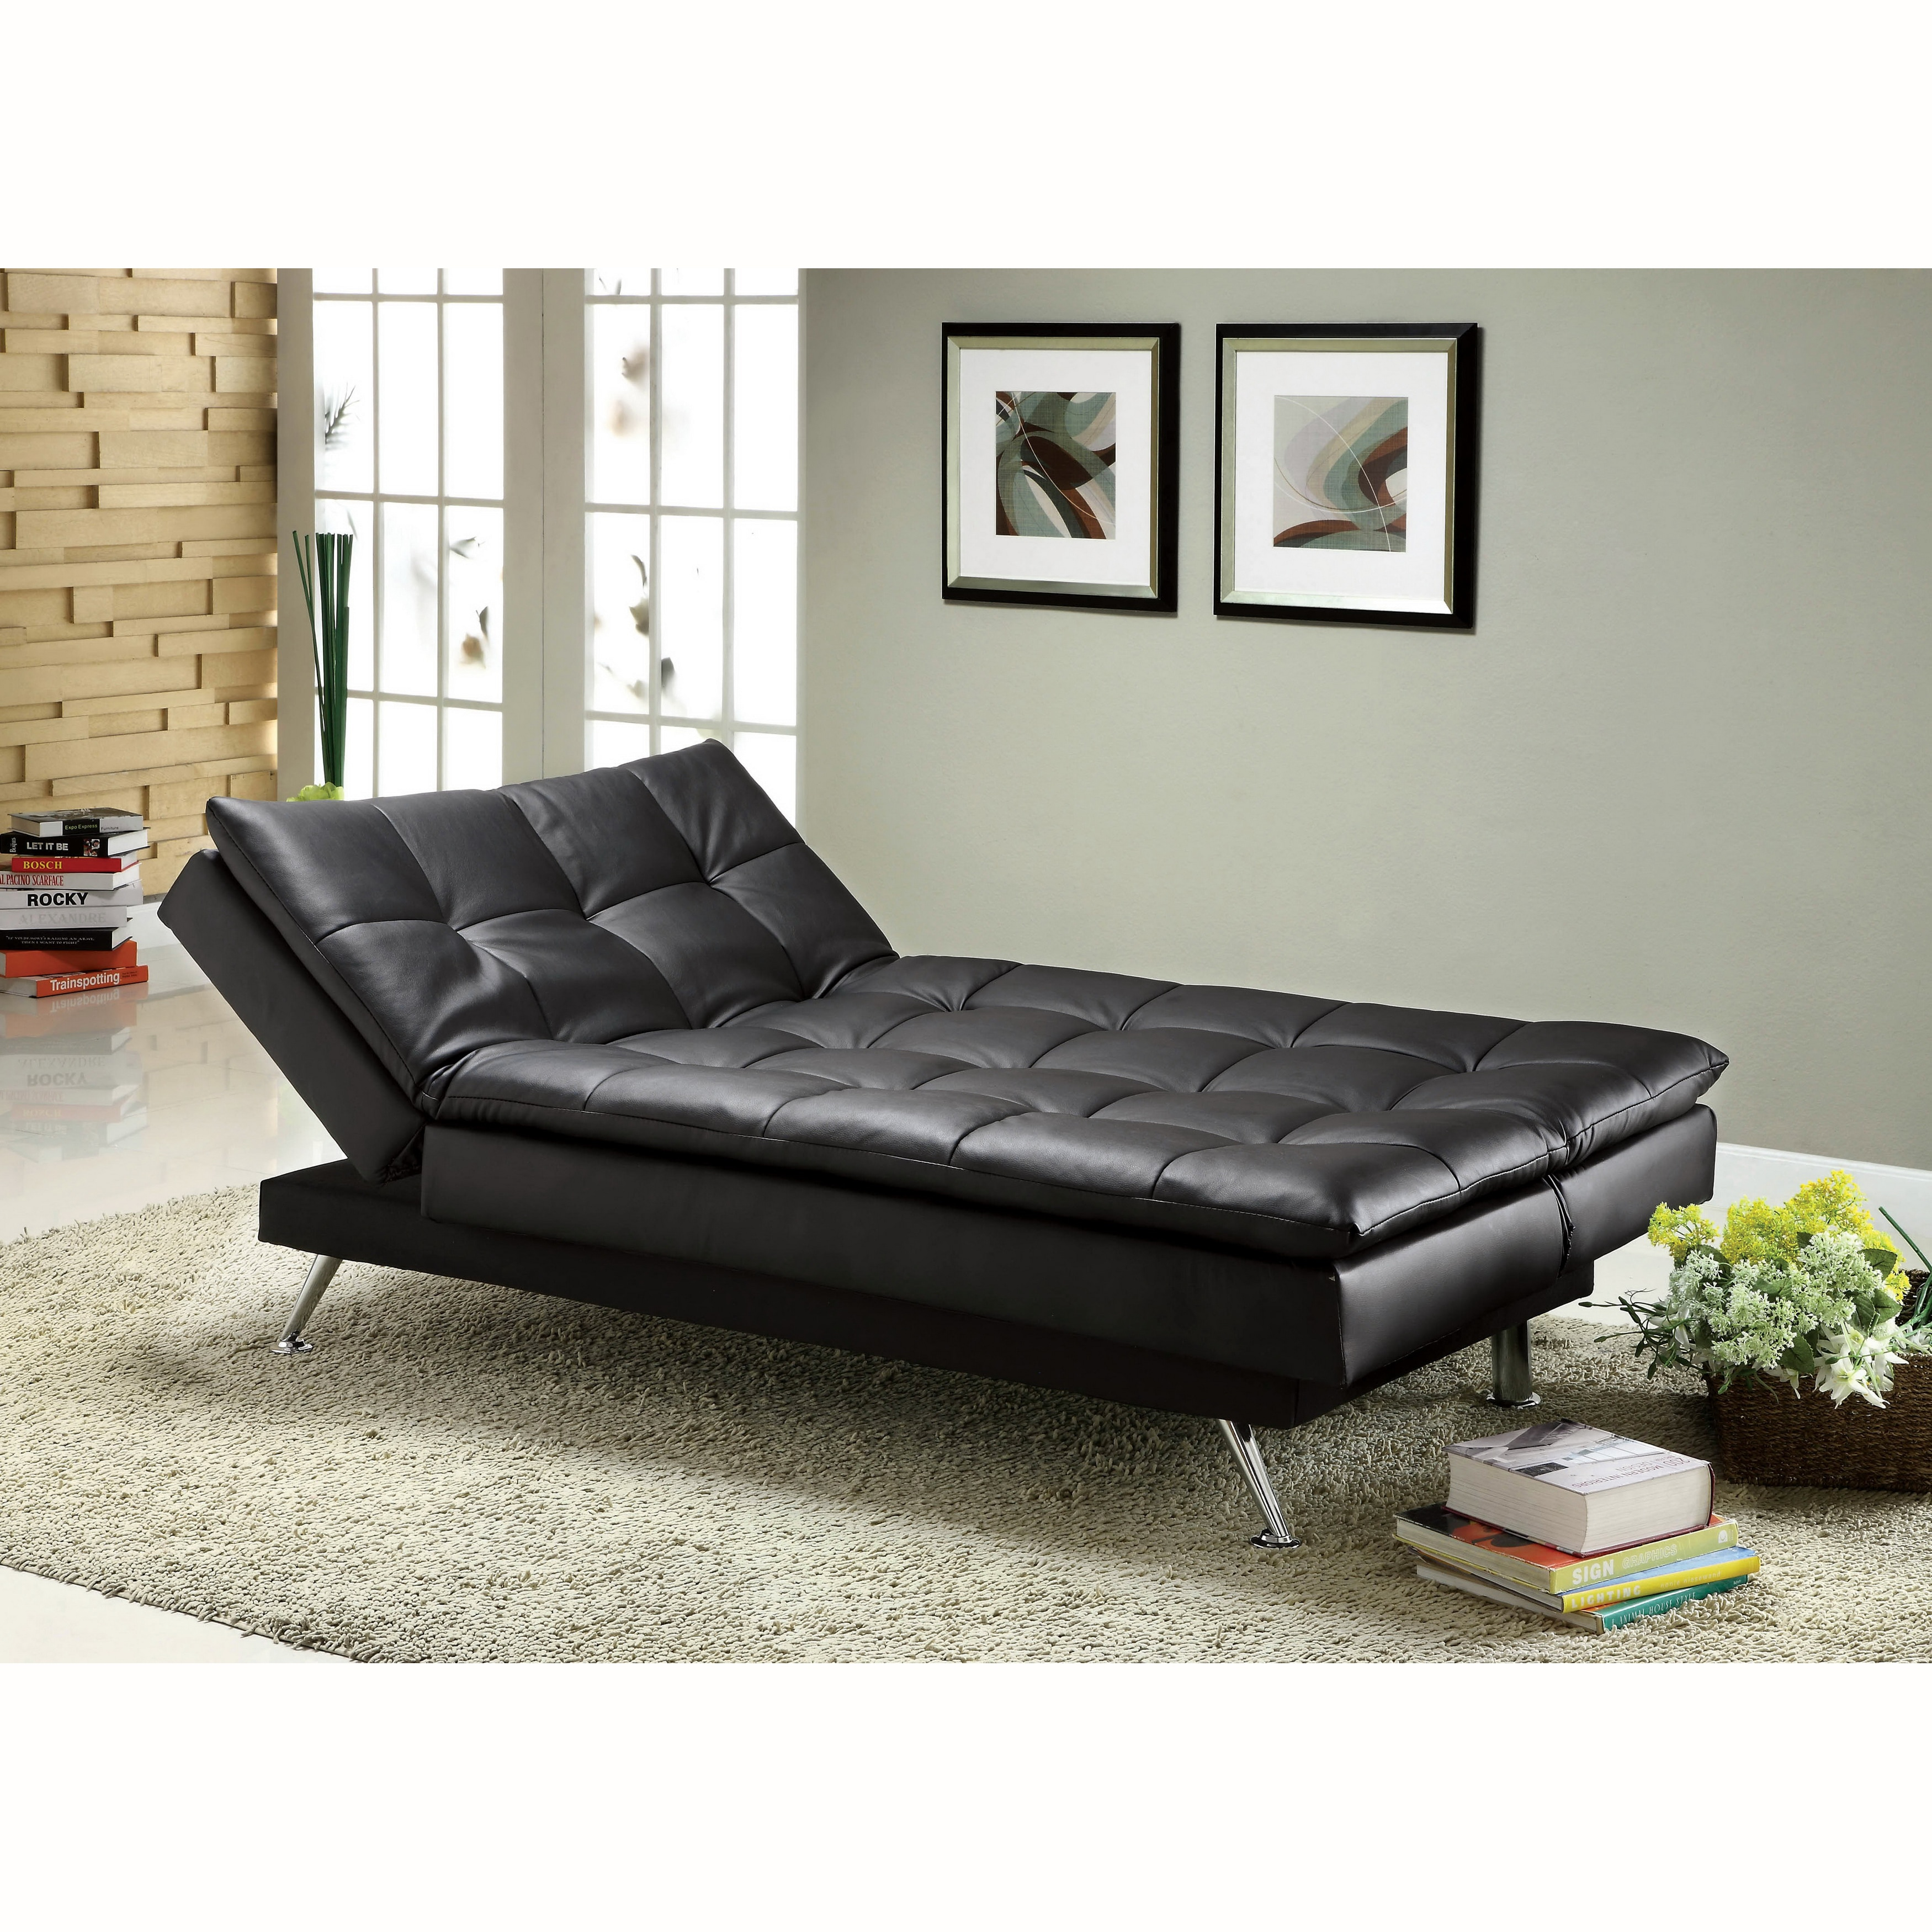 Furniture Of America Rit Contemporary Black Leatherette Futon Sofabed